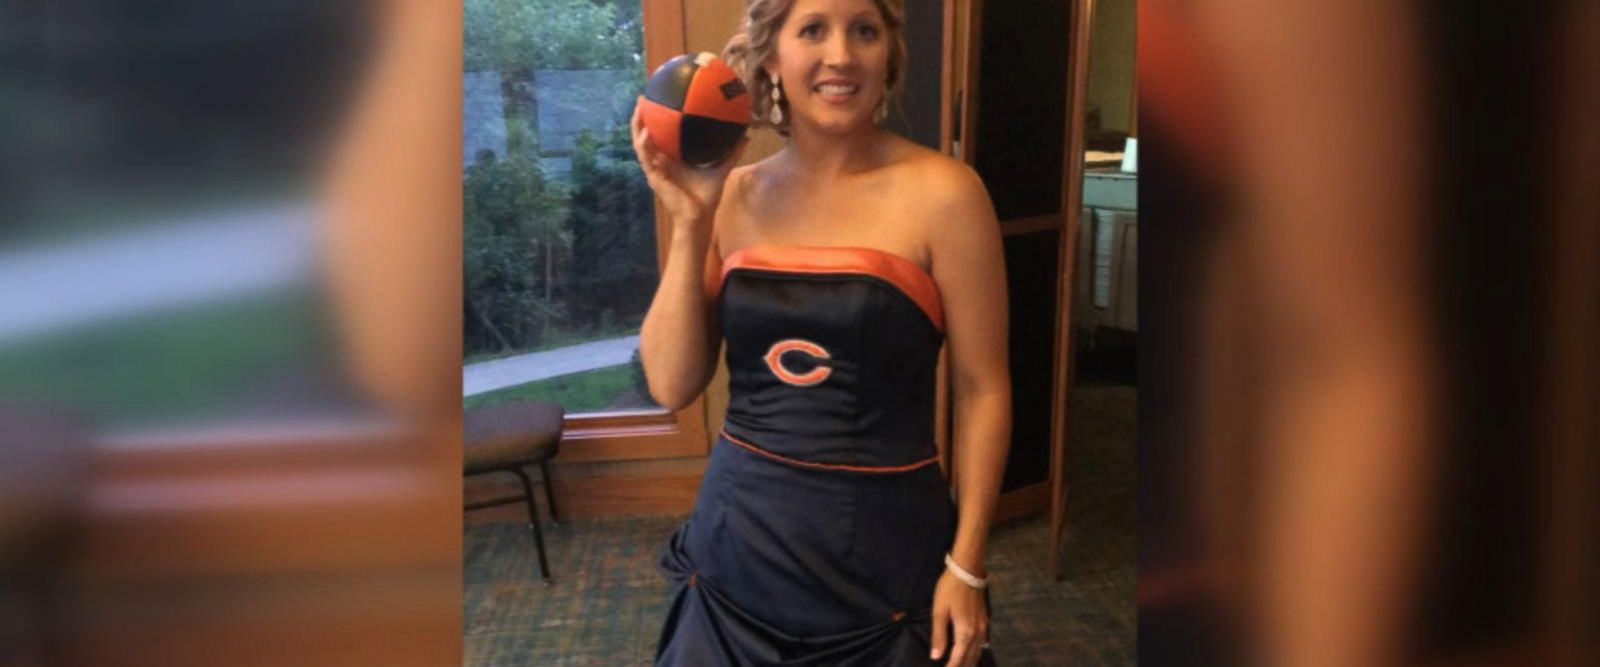 Brittney Harmon surprised her die-hard Bears fan father, Steve Benda, by wearing a team-themed dress at her wedding on July 22.